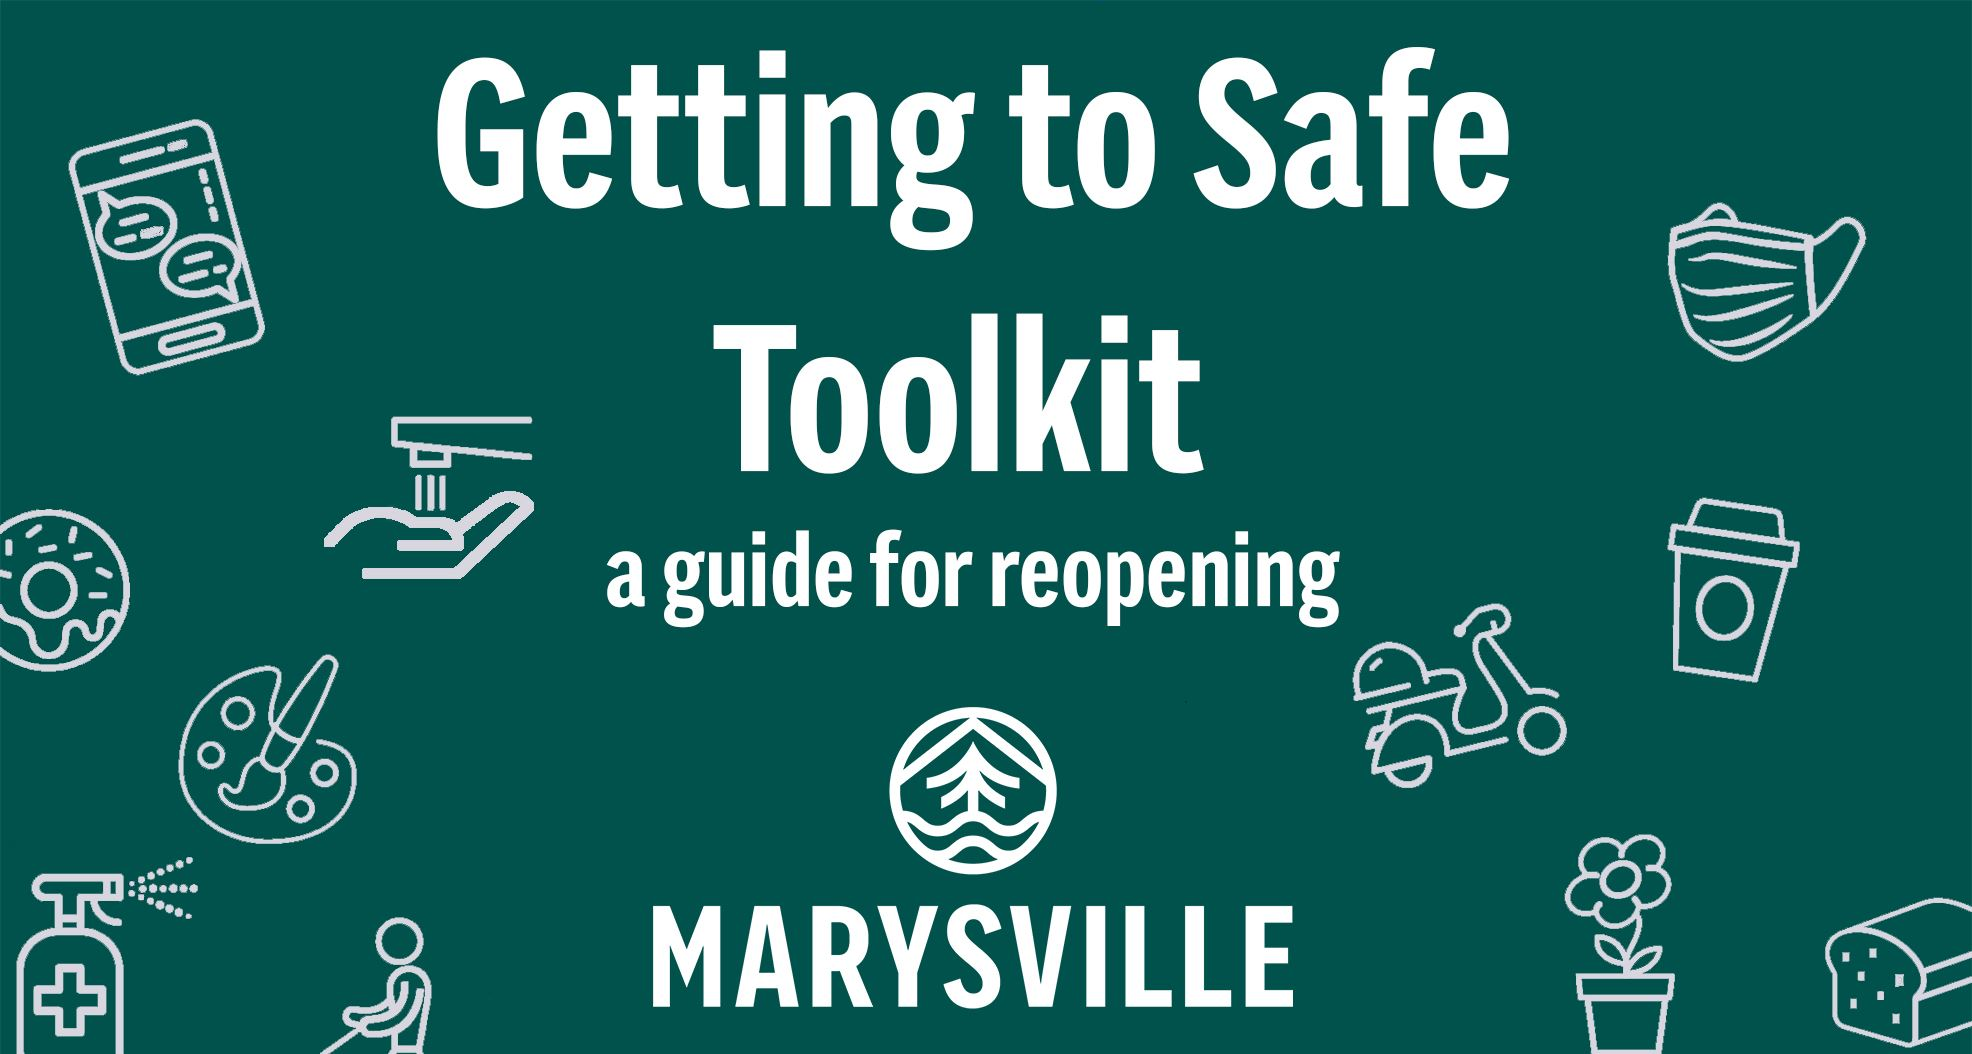 Getting to safe business guide to reopening